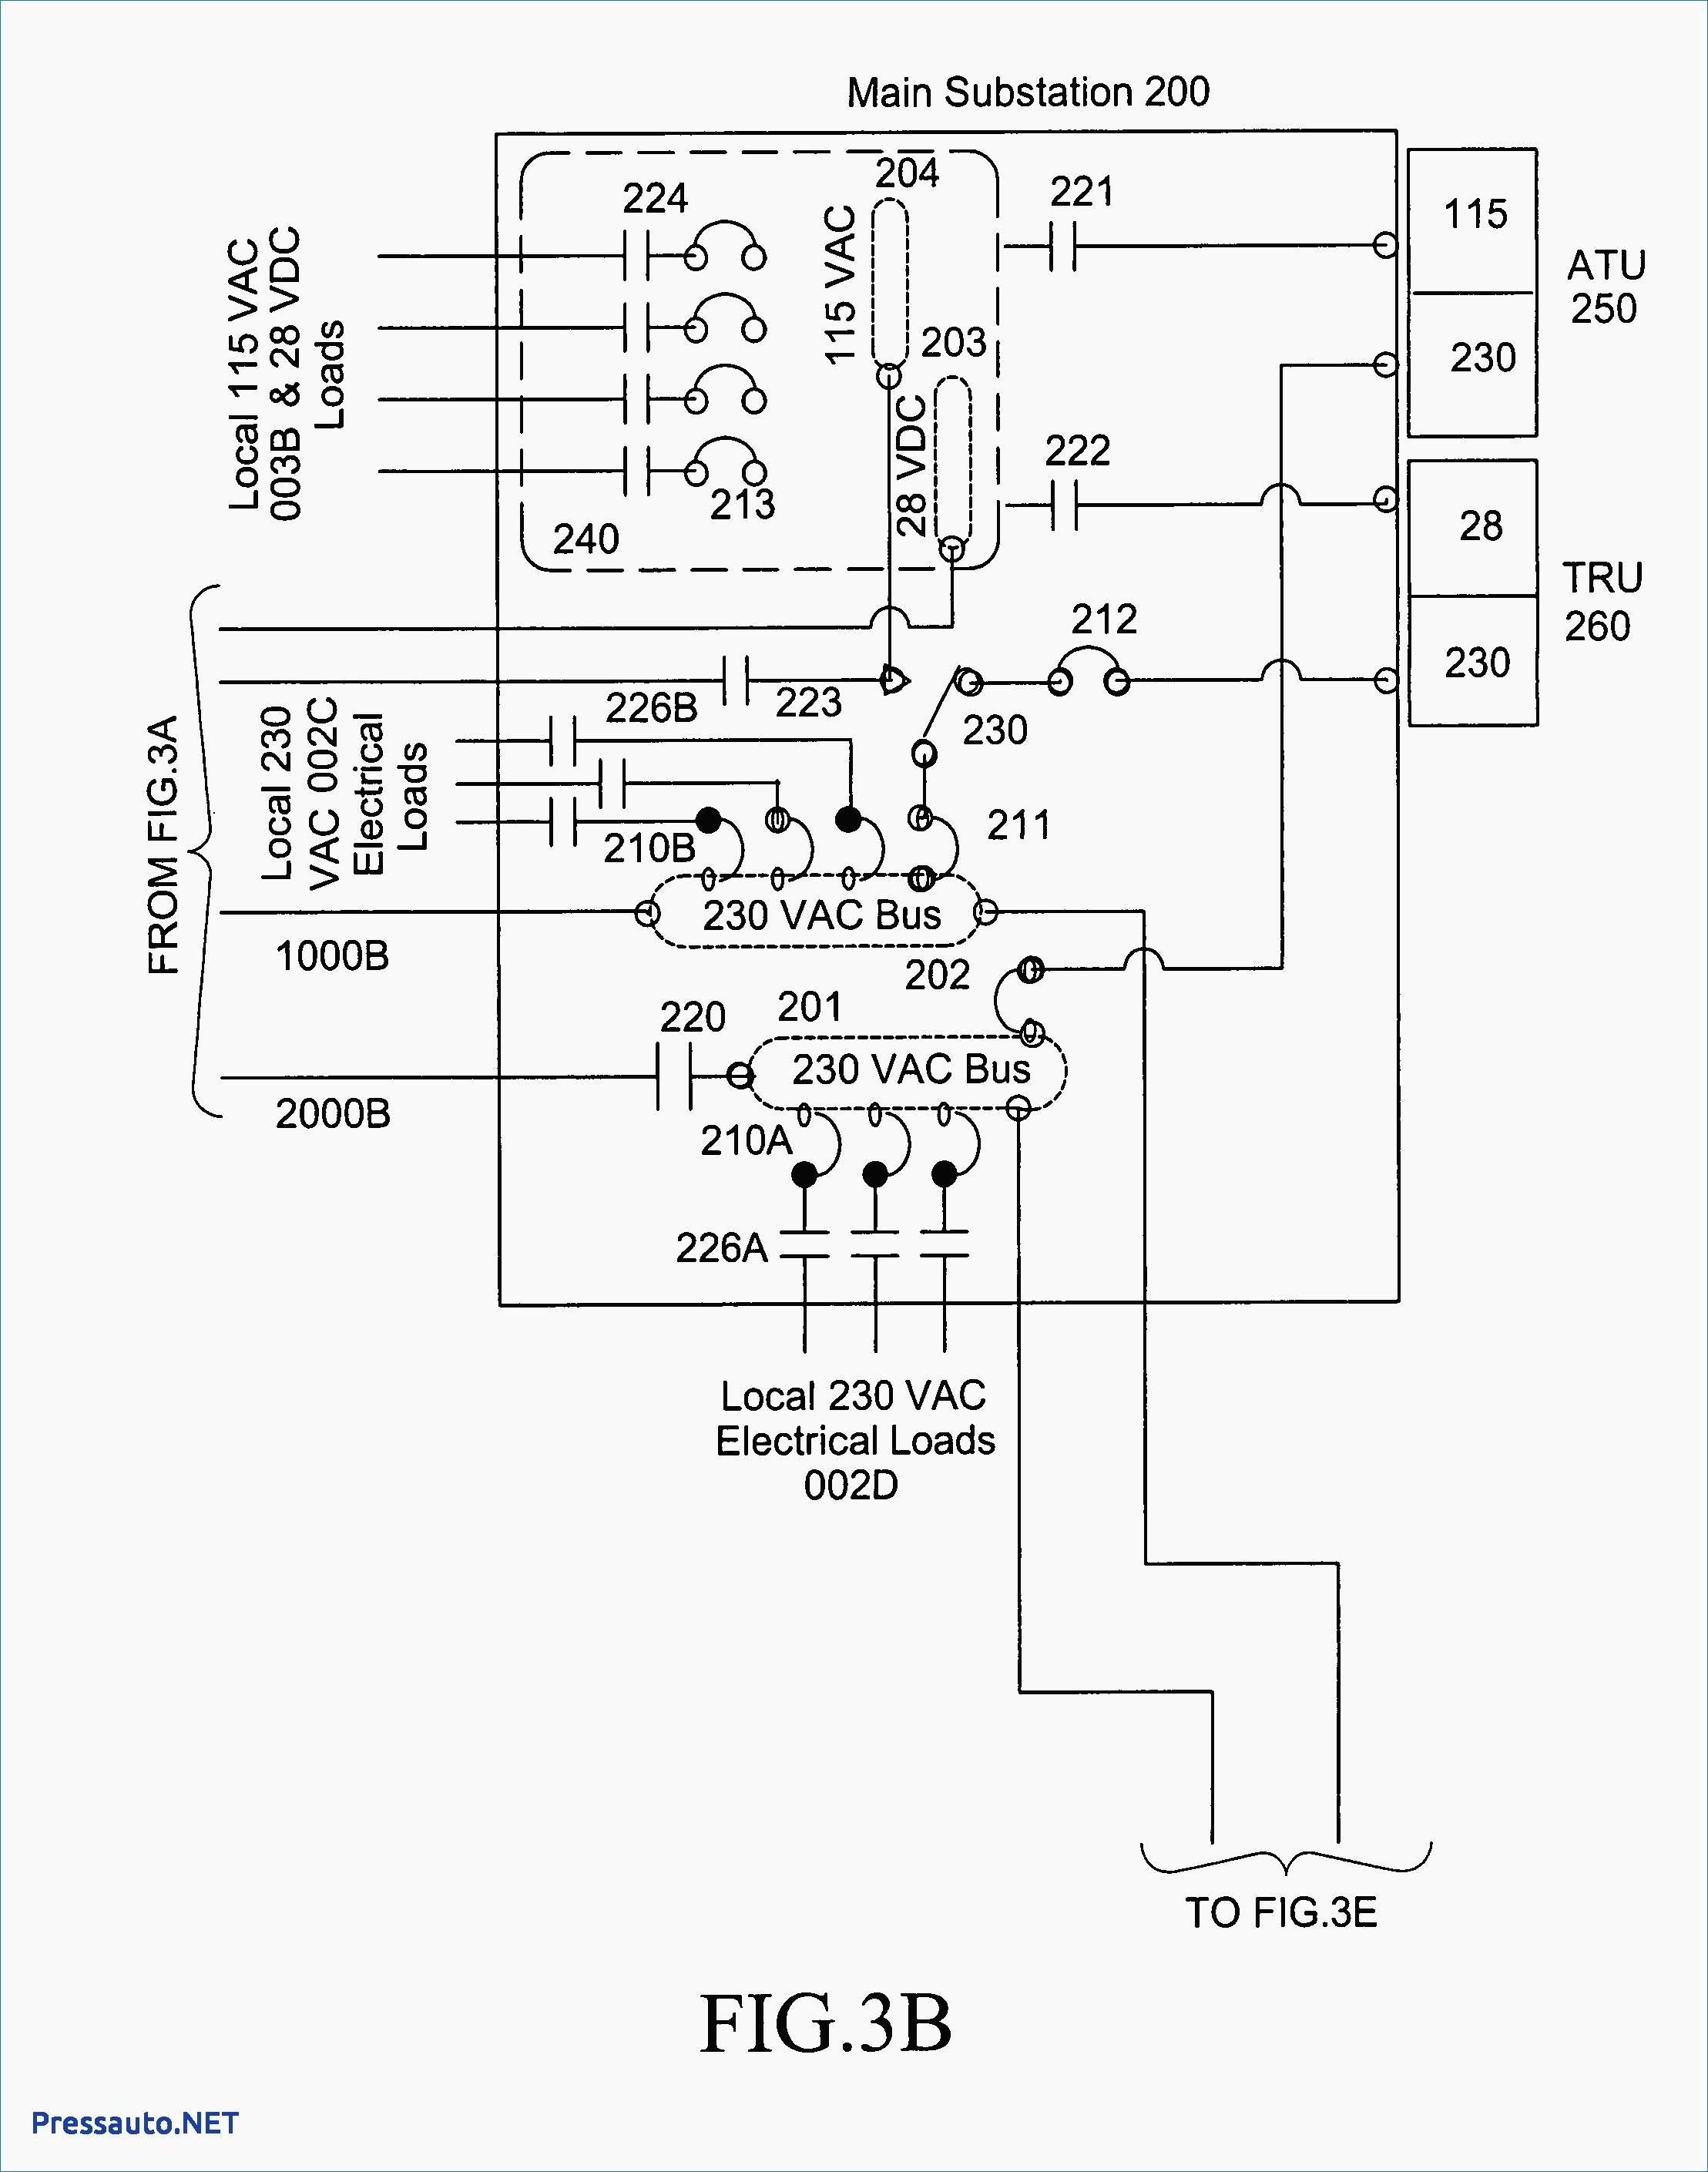 W7459a1001 Wiring Diagram. Honeywell Ml4302f1008 Actuator Wiring Diagram Trusted Rh Dafpods Co Basic Electrical Schematic Diagrams Simple. Wiring. Wiring Actuator Honeywell Diagram M6520a At Scoala.co